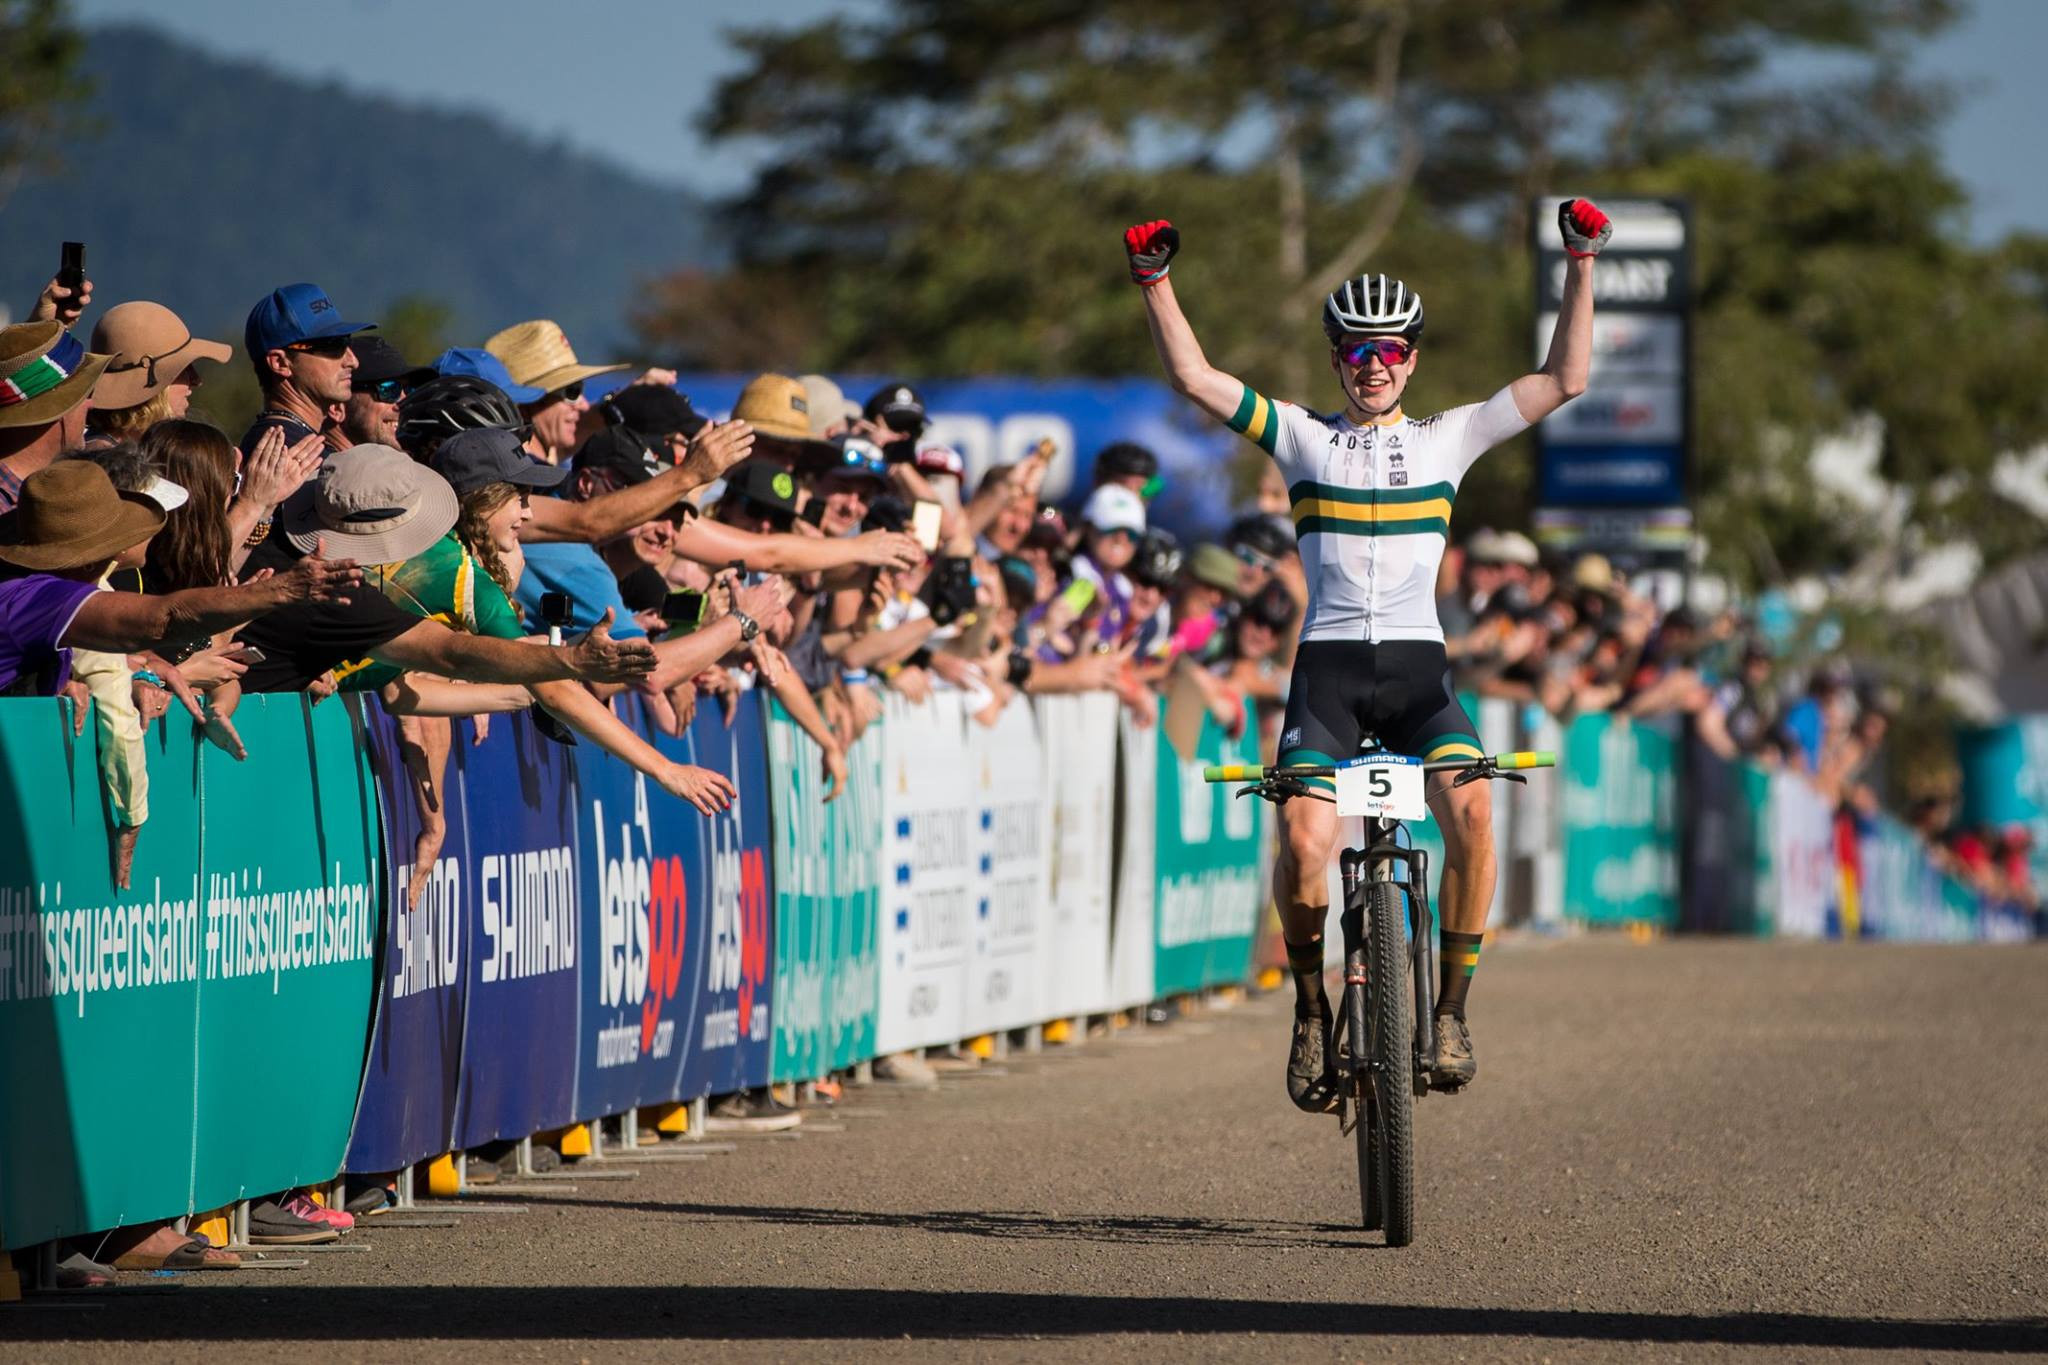 Home favourite wins men's junior title at UCI Mountain Bike World Championships